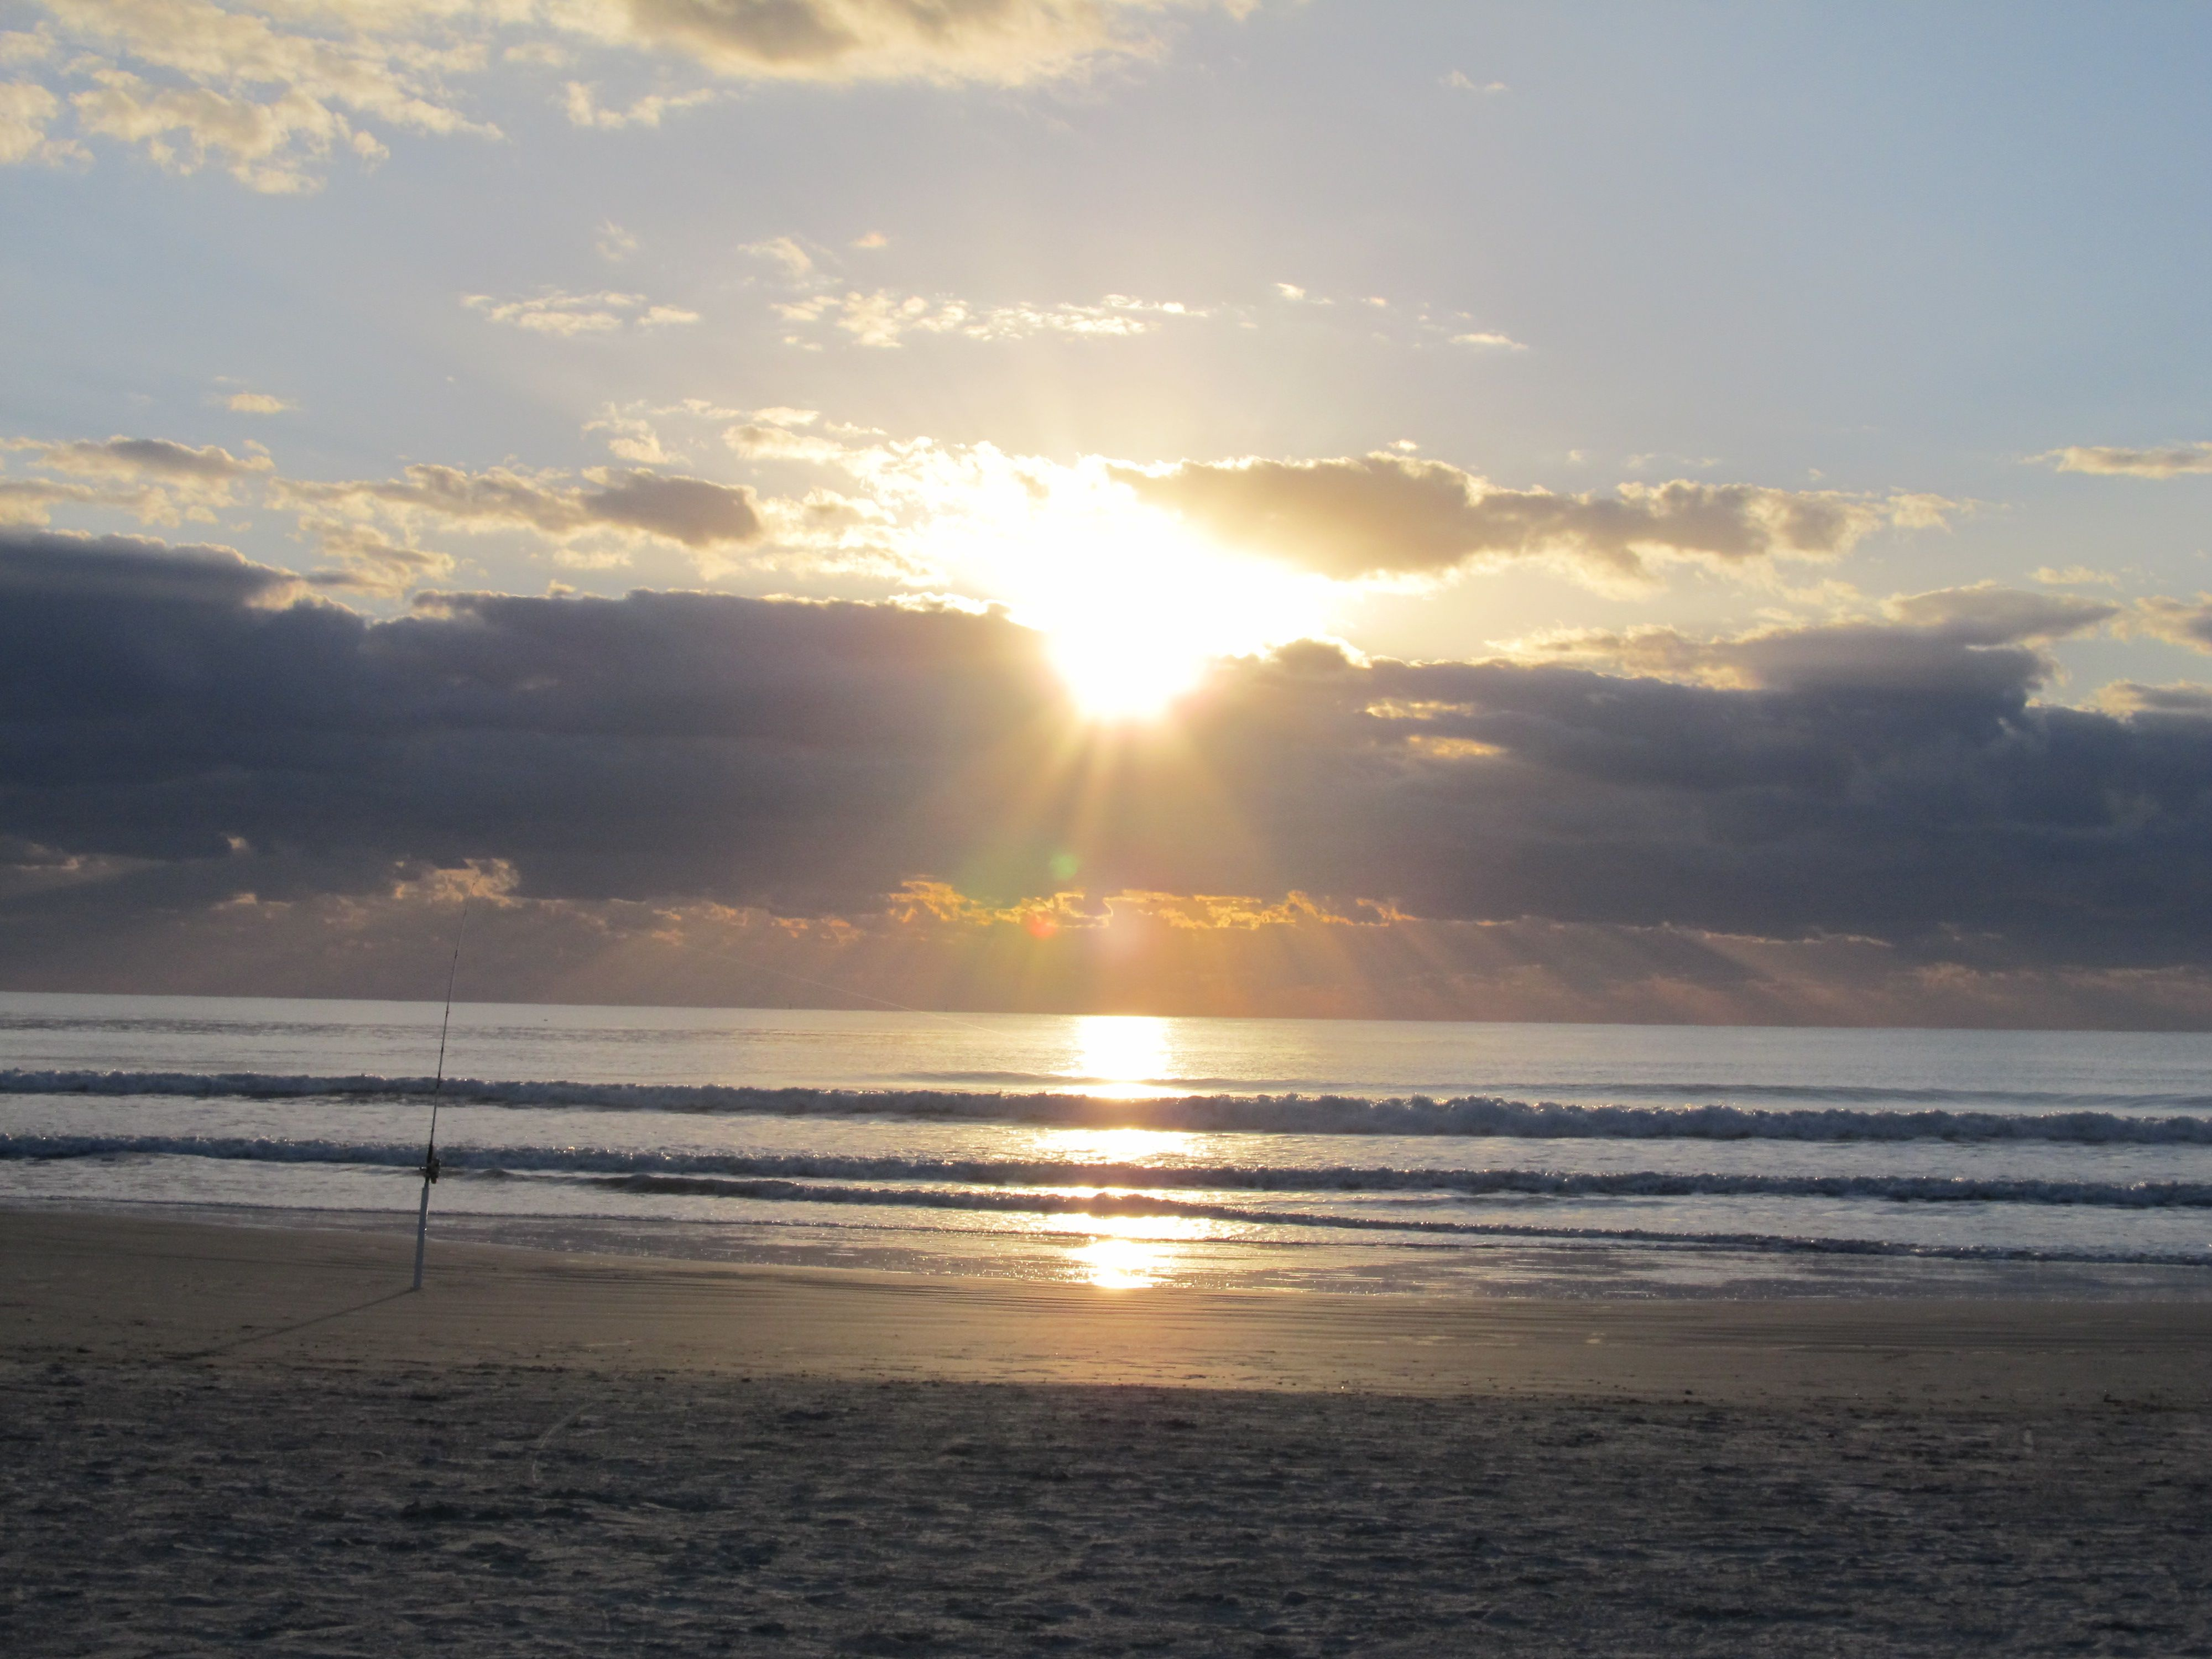 Early morning sunrise on the beach, Cape Canaveral,Florida